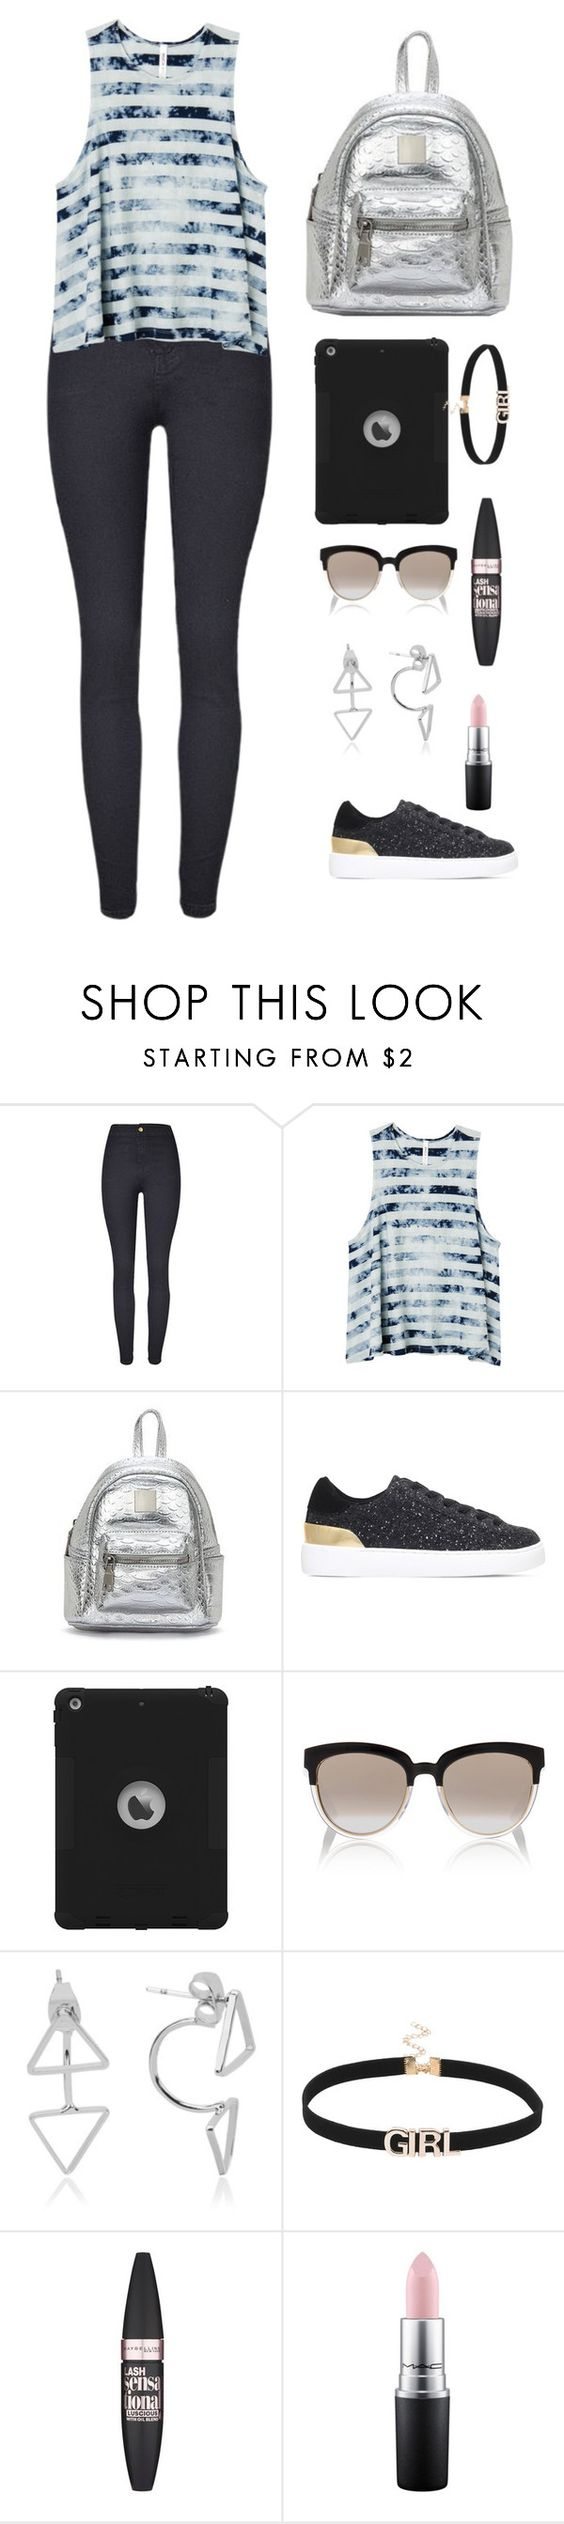 """""""Untitled #316"""" by keyling99 ❤ liked on Polyvore featuring RVCA, Nine West, Christian Dior, Maybelline and MAC Cosmetics"""